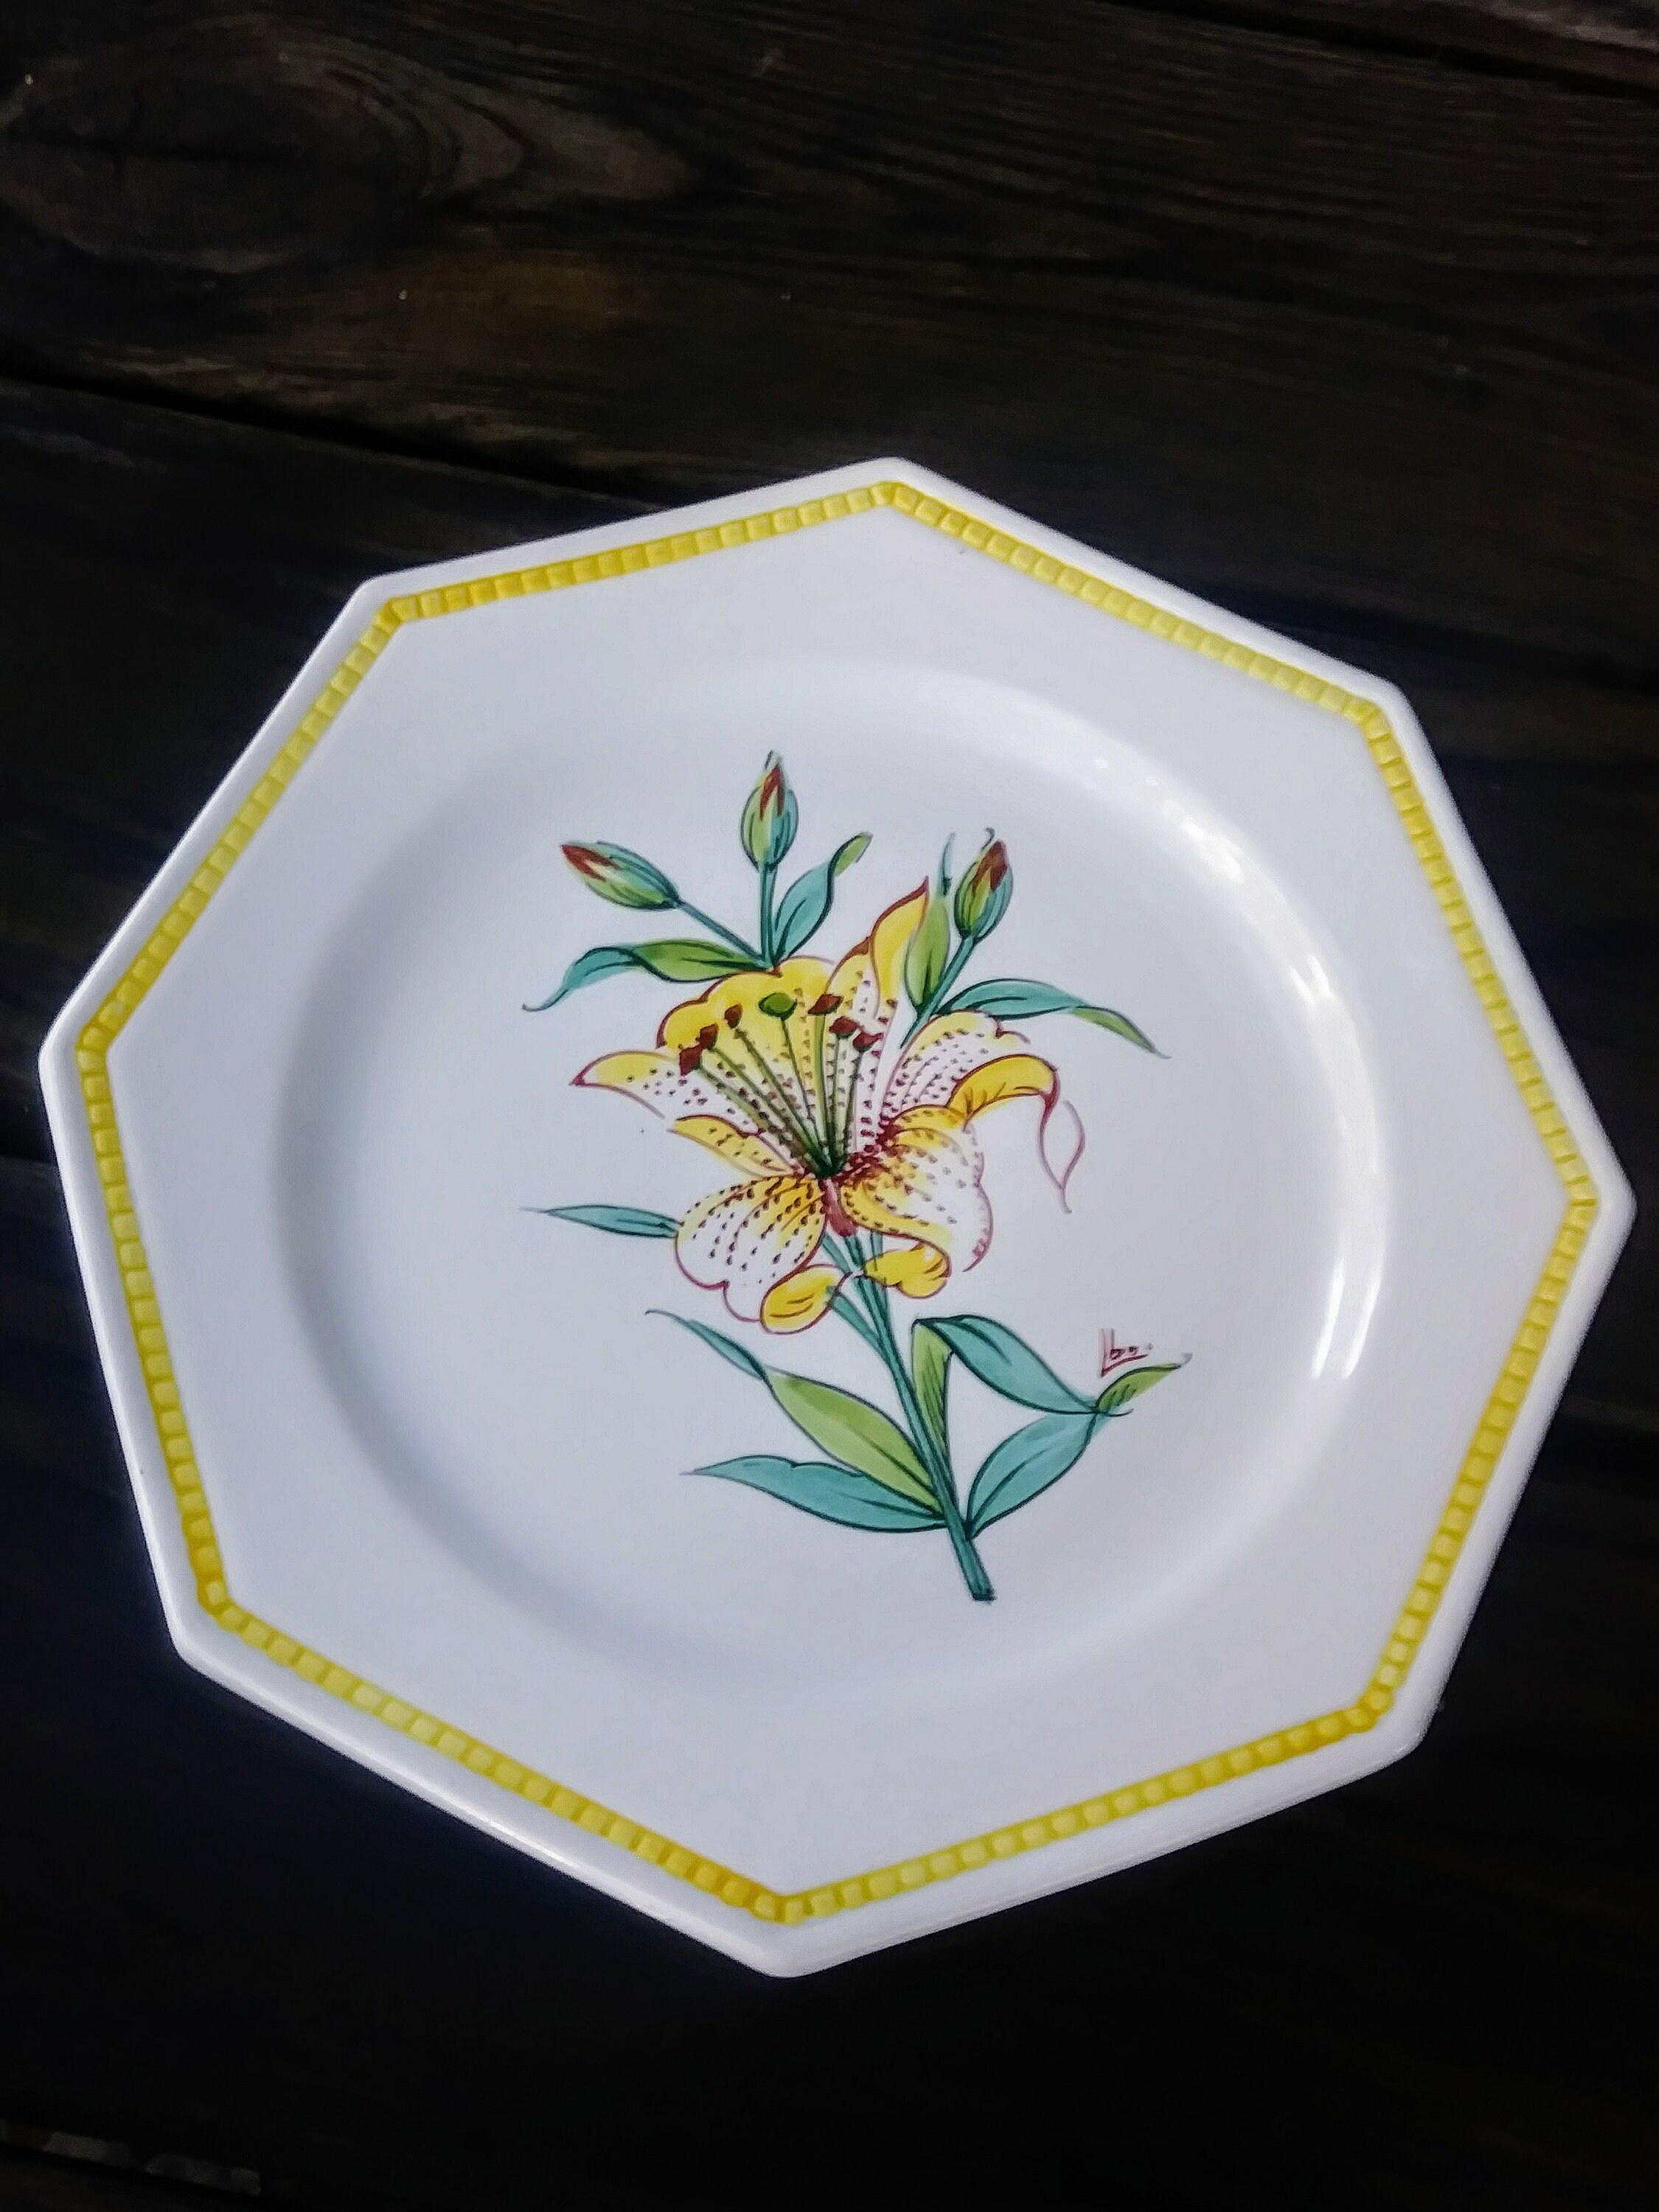 Italian Decorative Plates For Hanging.Decorative Yellow Lily Plate Made In Italy For Marshall